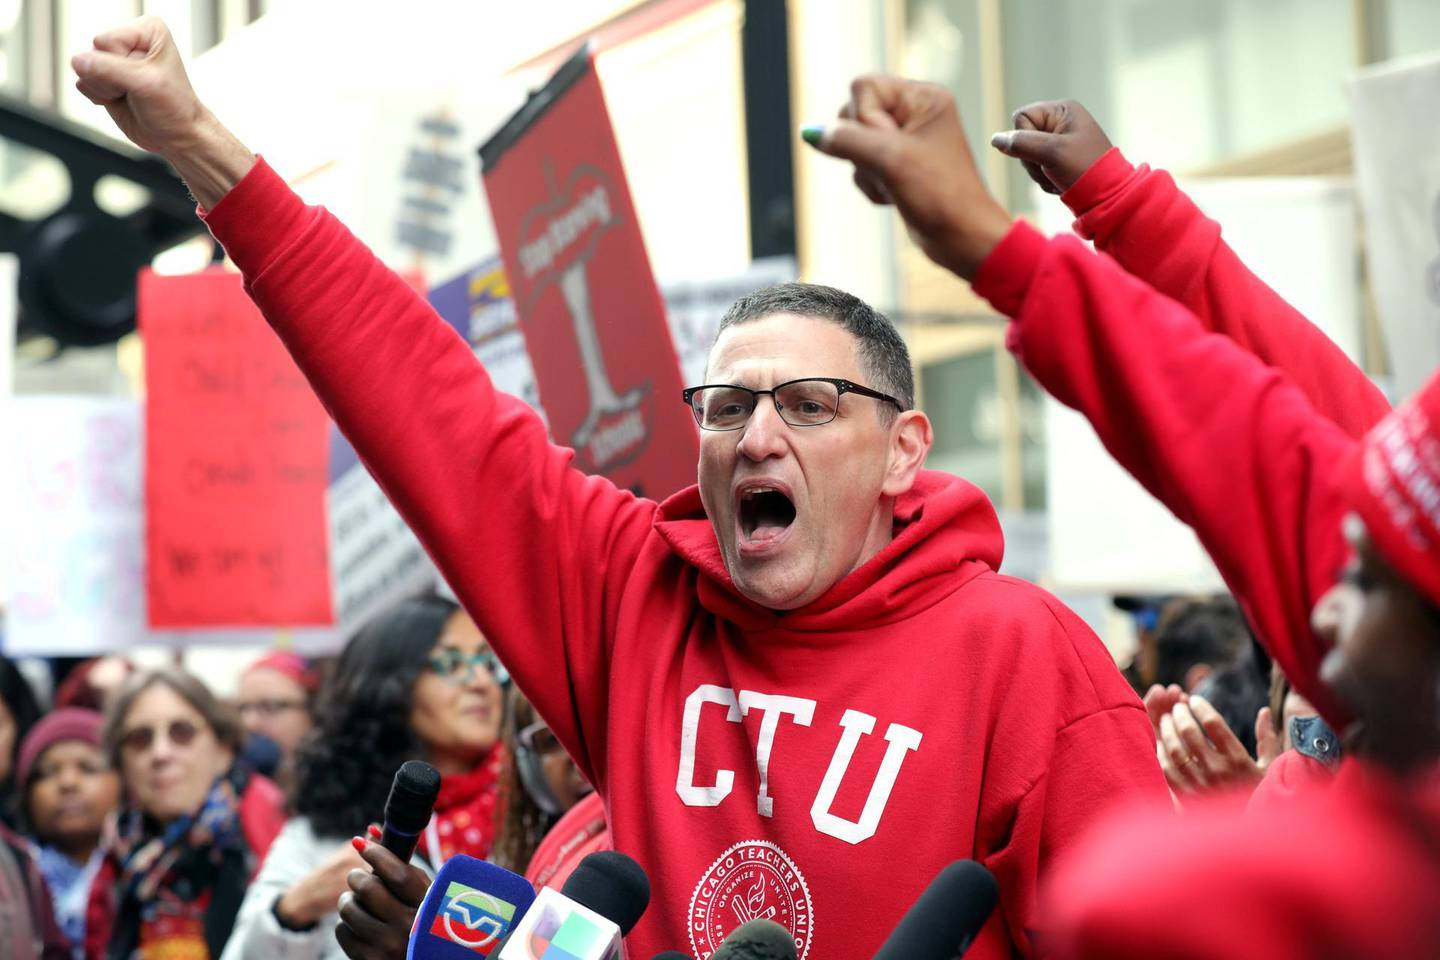 FILE PHOTO: Chicago Teachers Union President Jesse Sharkey cheers during a rally on the first day of a teacher strike in Chicago, Illinois, U.S., October 17, 2019.  REUTERS/John Gress/File Photo